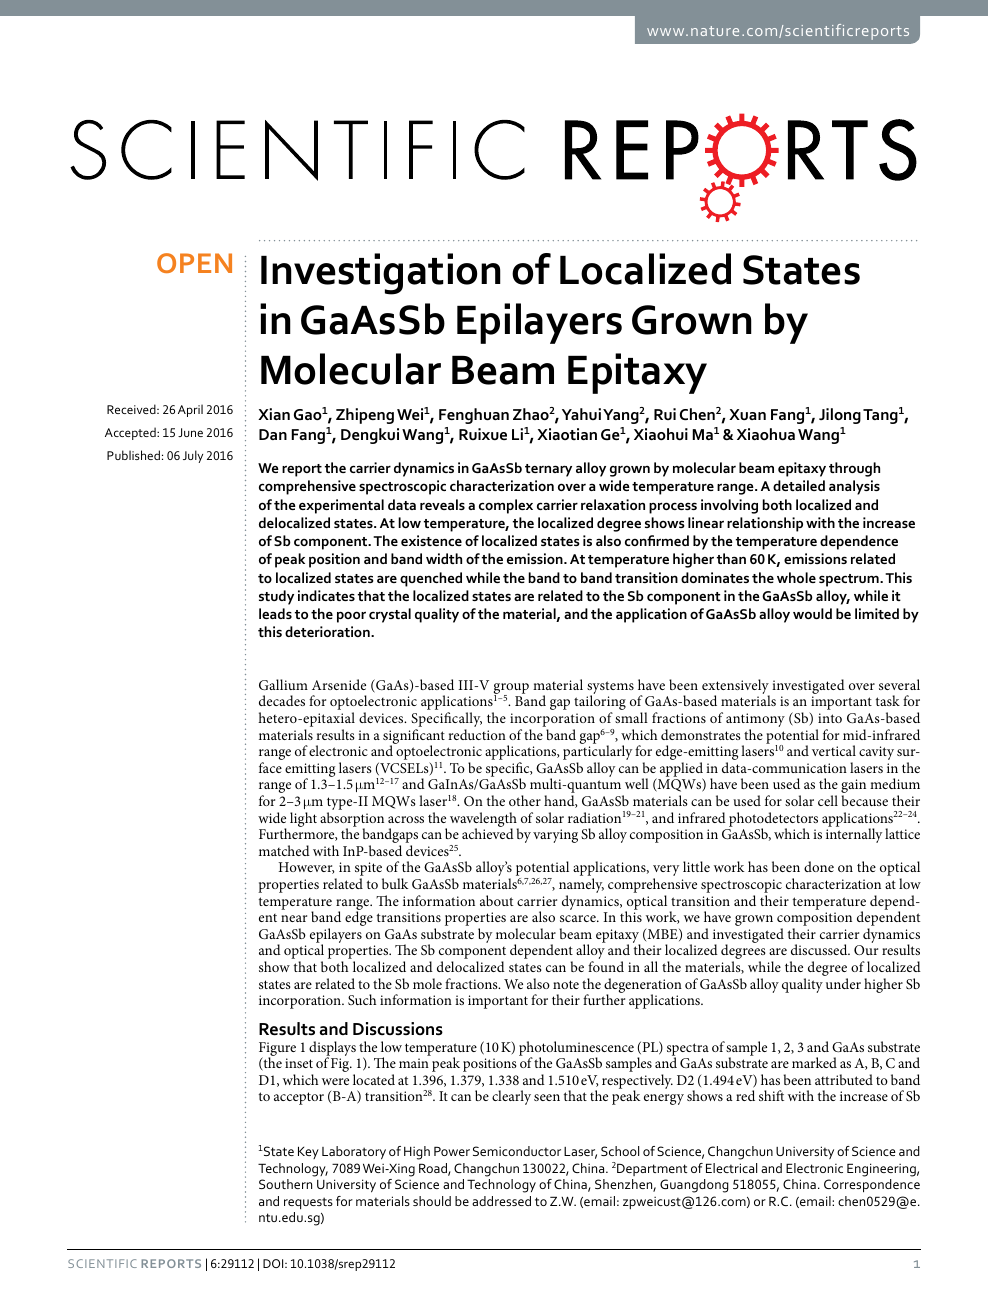 Investigation of Localized States in GaAsSb Epilayers Grown